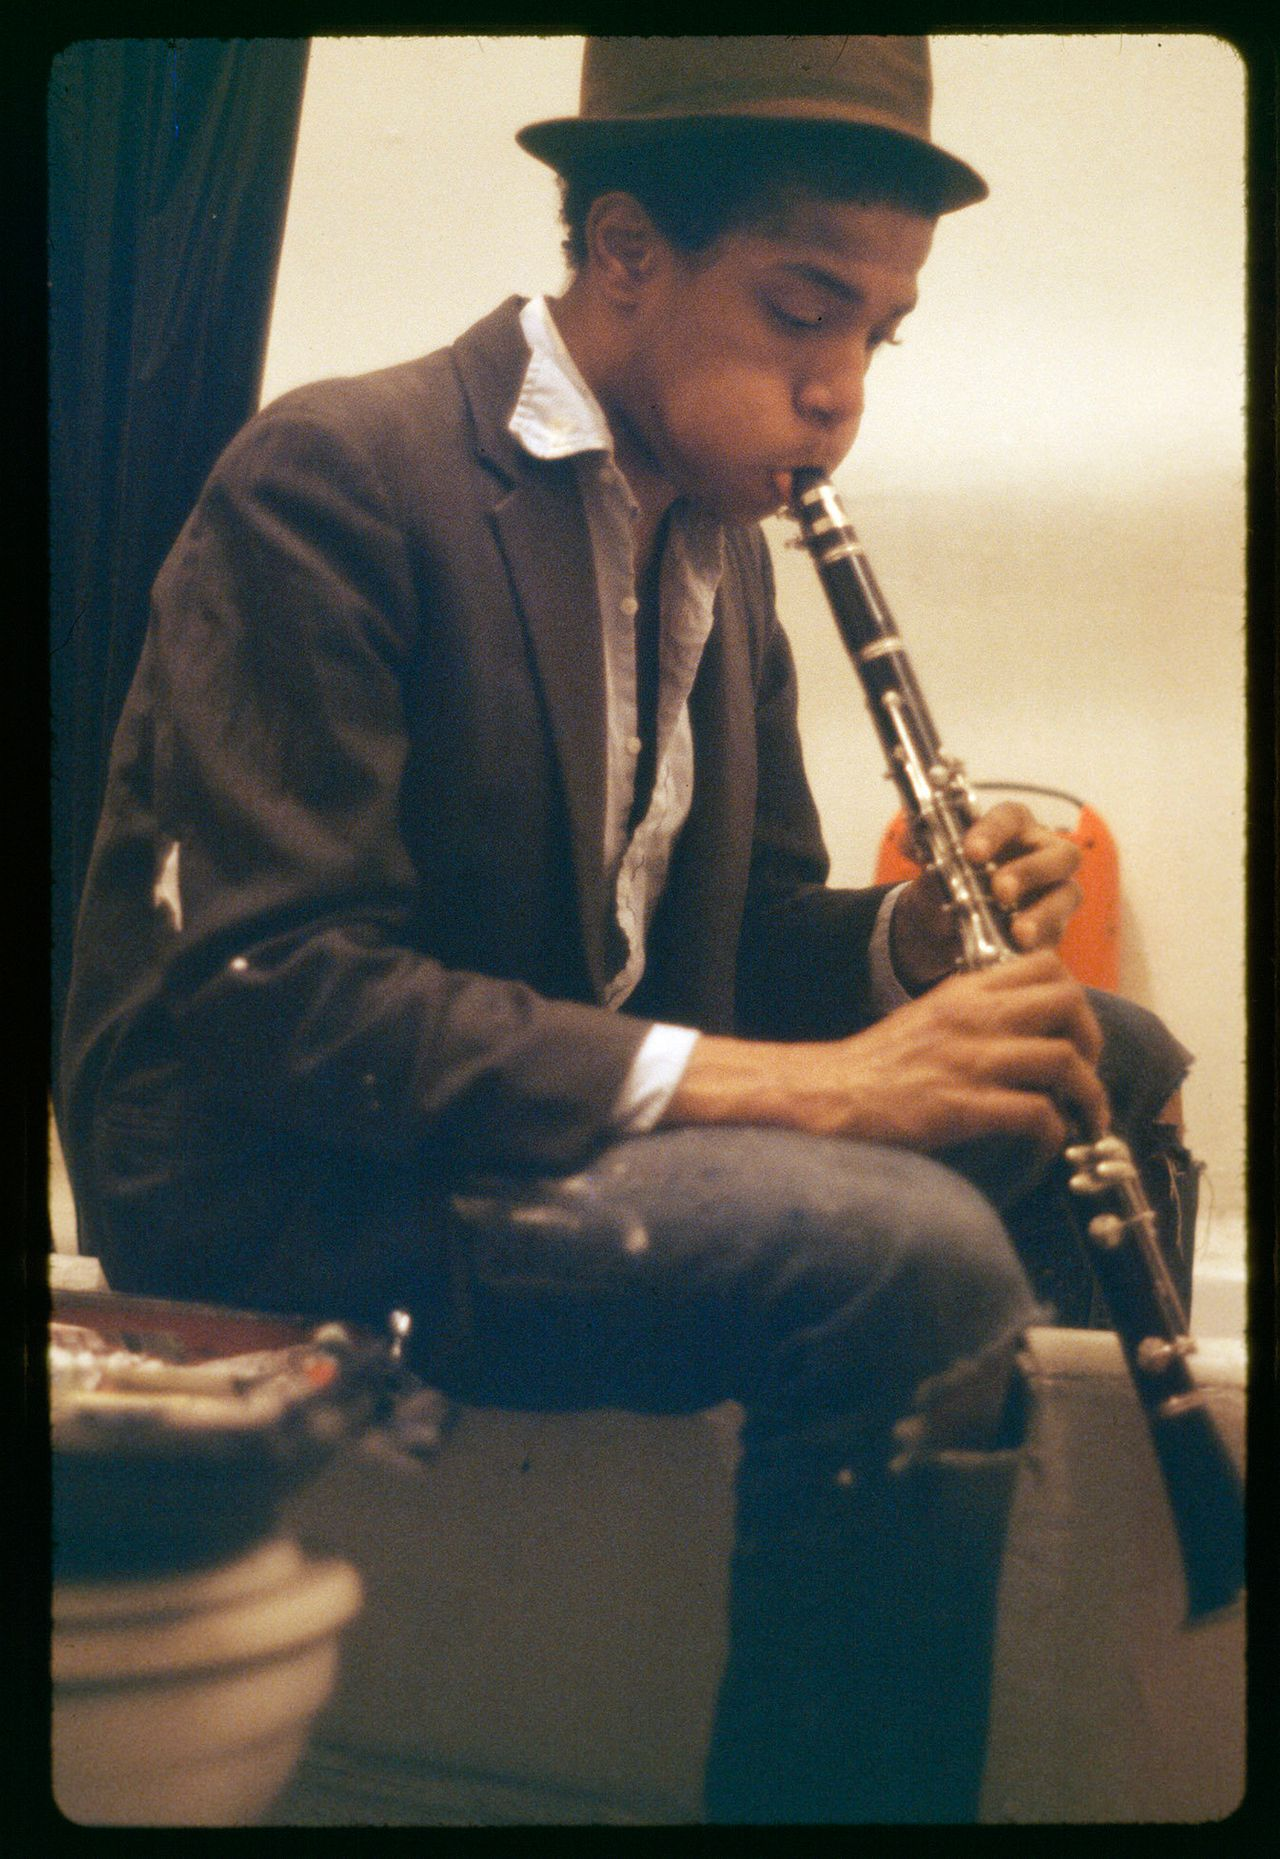 Basquiat practicing clarinet in the bathroom of the apartment, 1980.